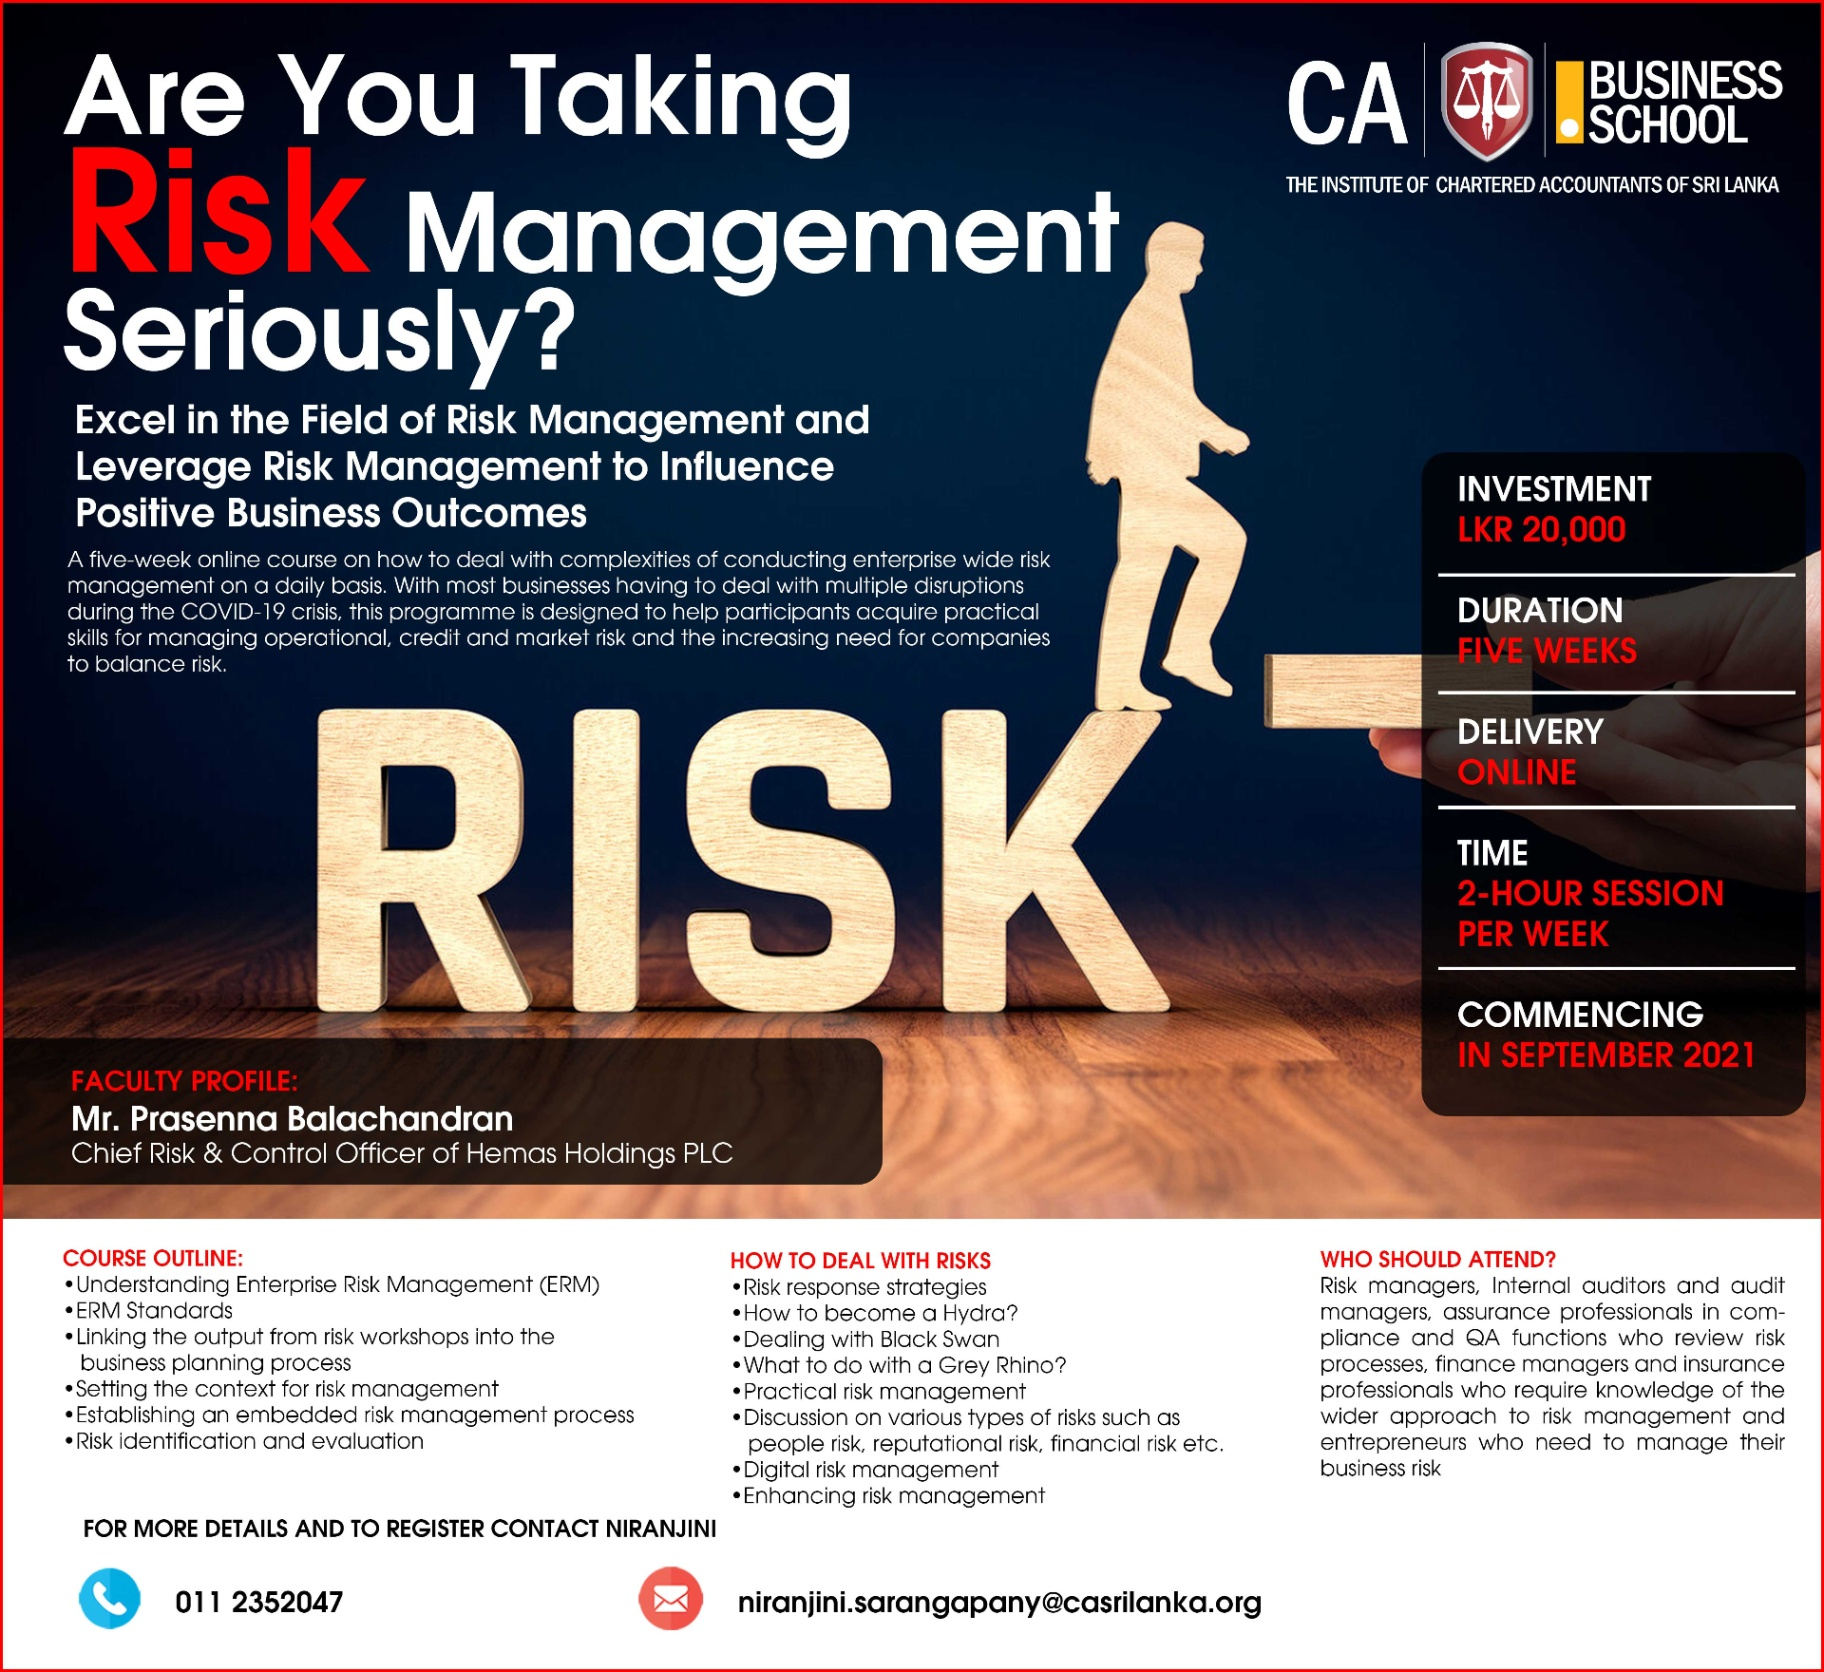 Are you taking Risk Management Seriously